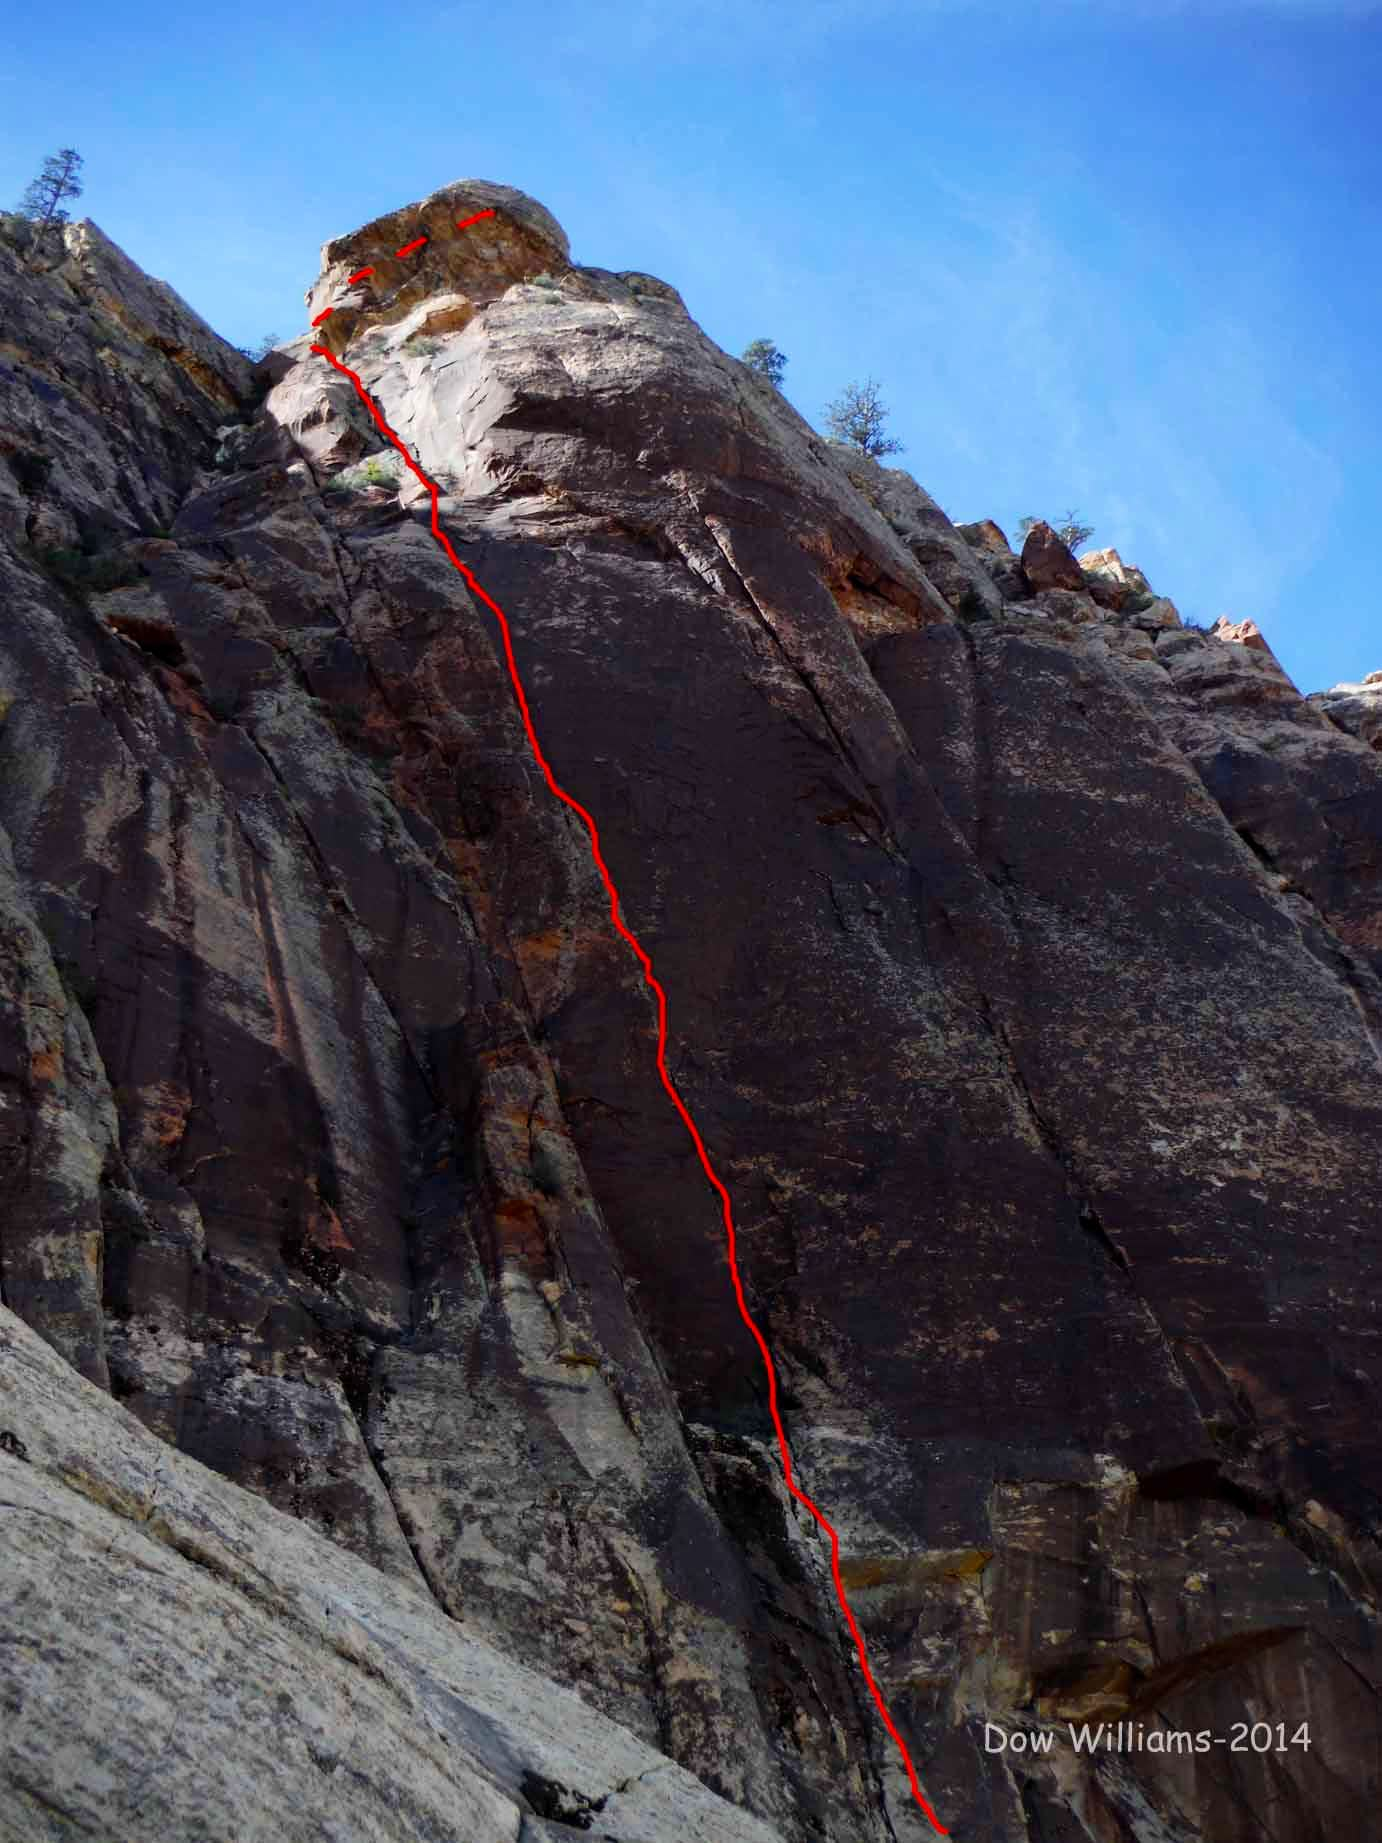 Impulse, 5.10b, 4 Pitches